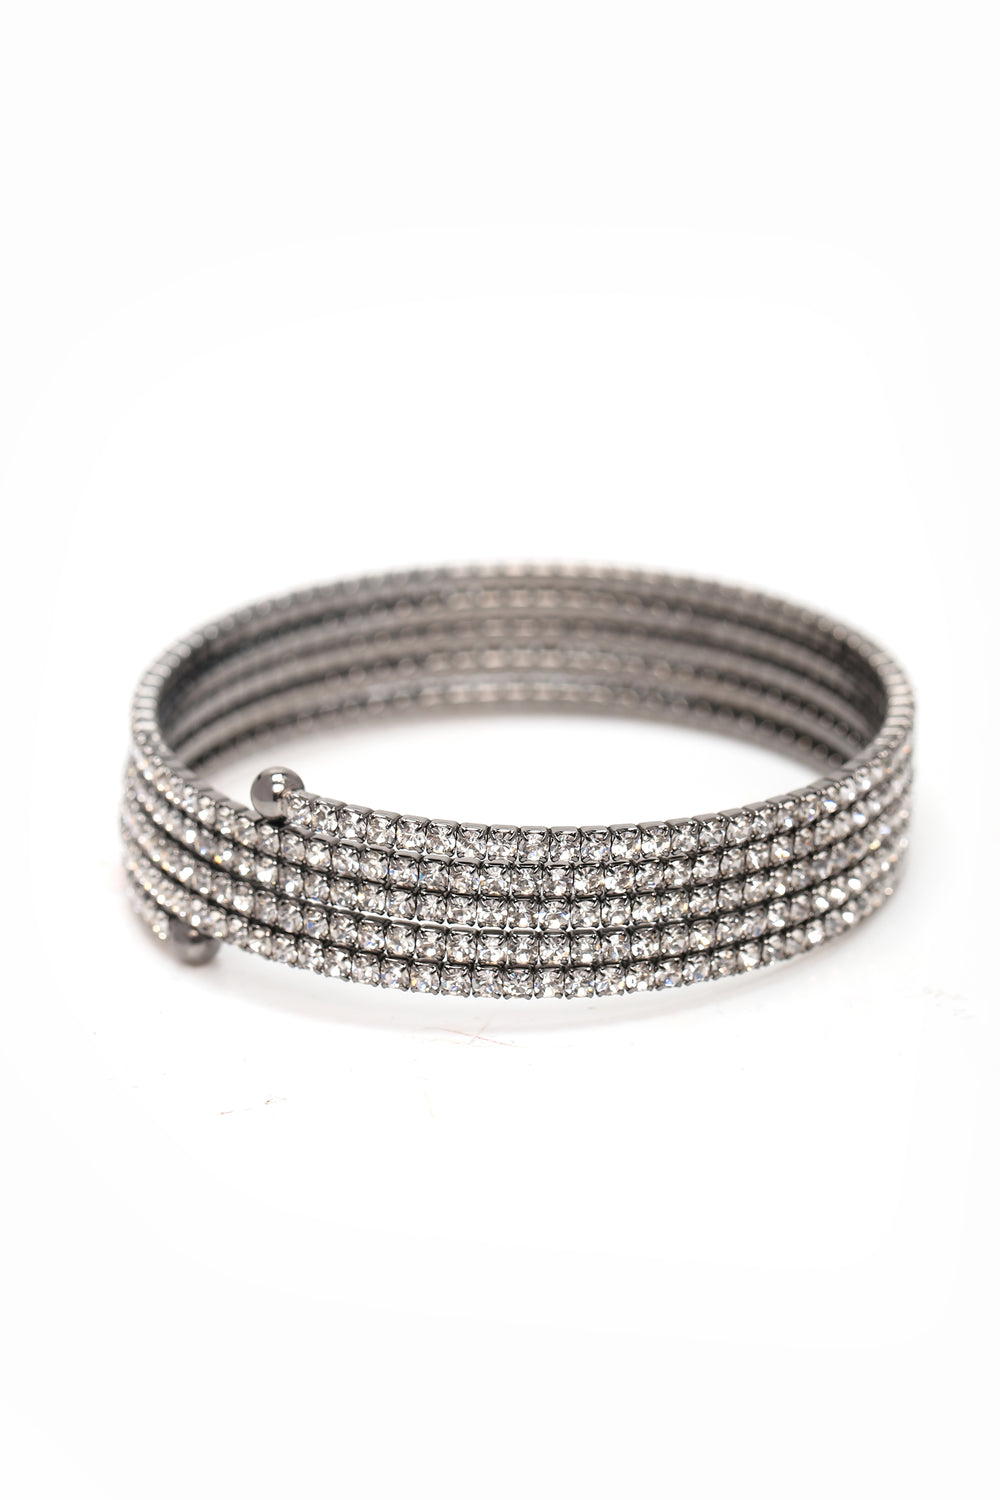 Round And Round Bracelet - Gunmetal